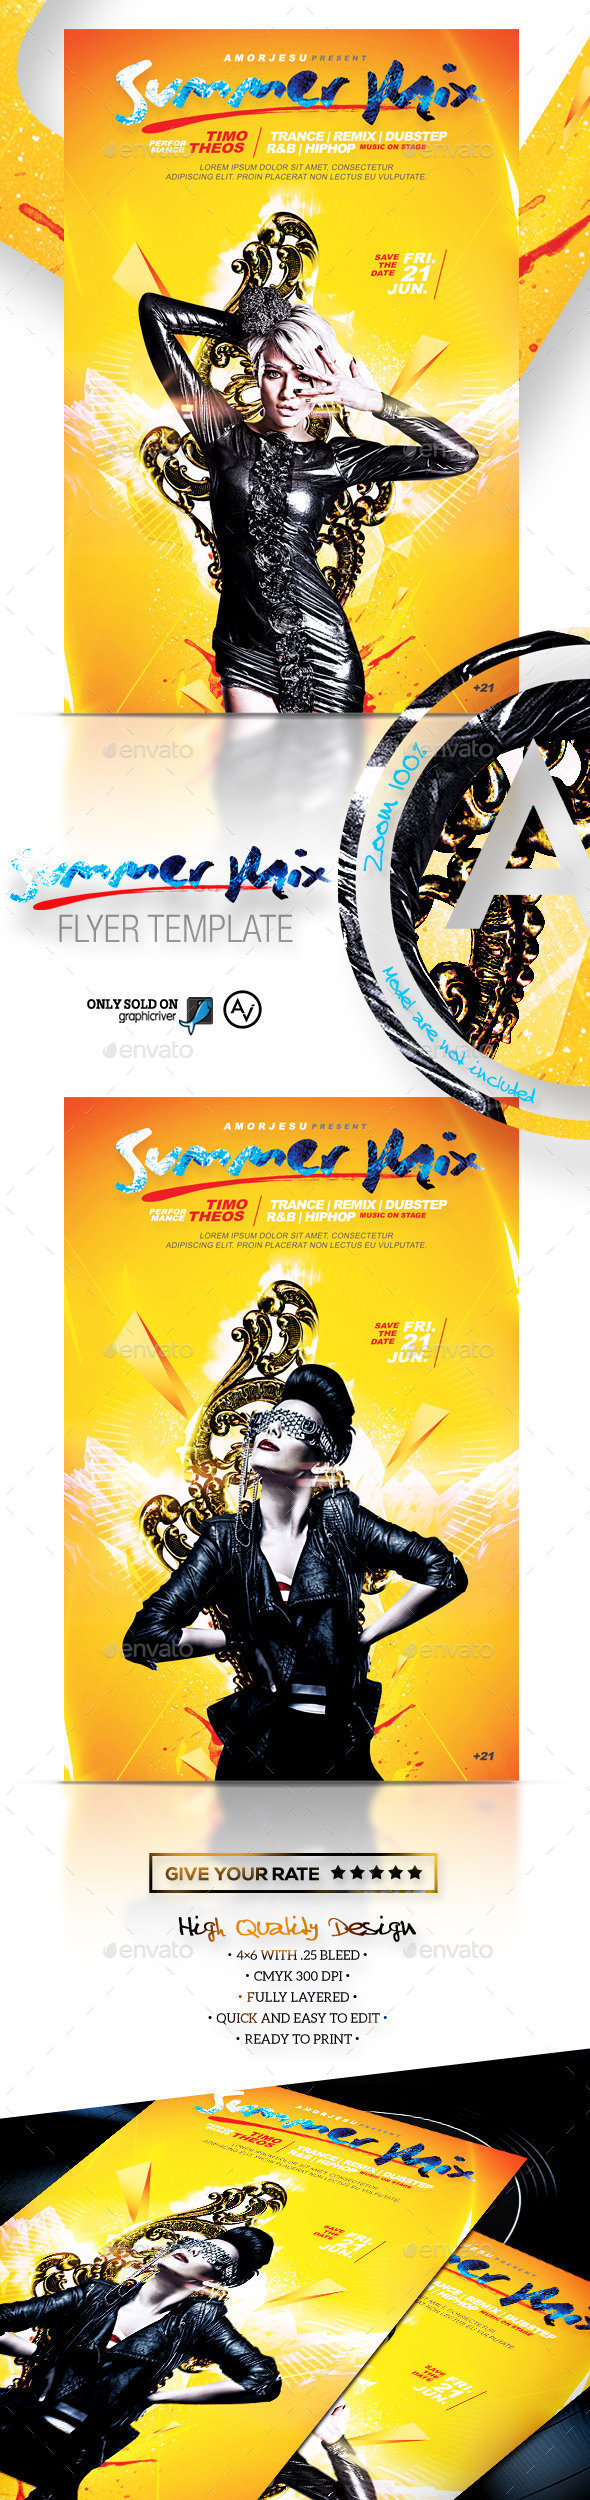 Summer Mix Flyer Template - Clubs & Parties Events